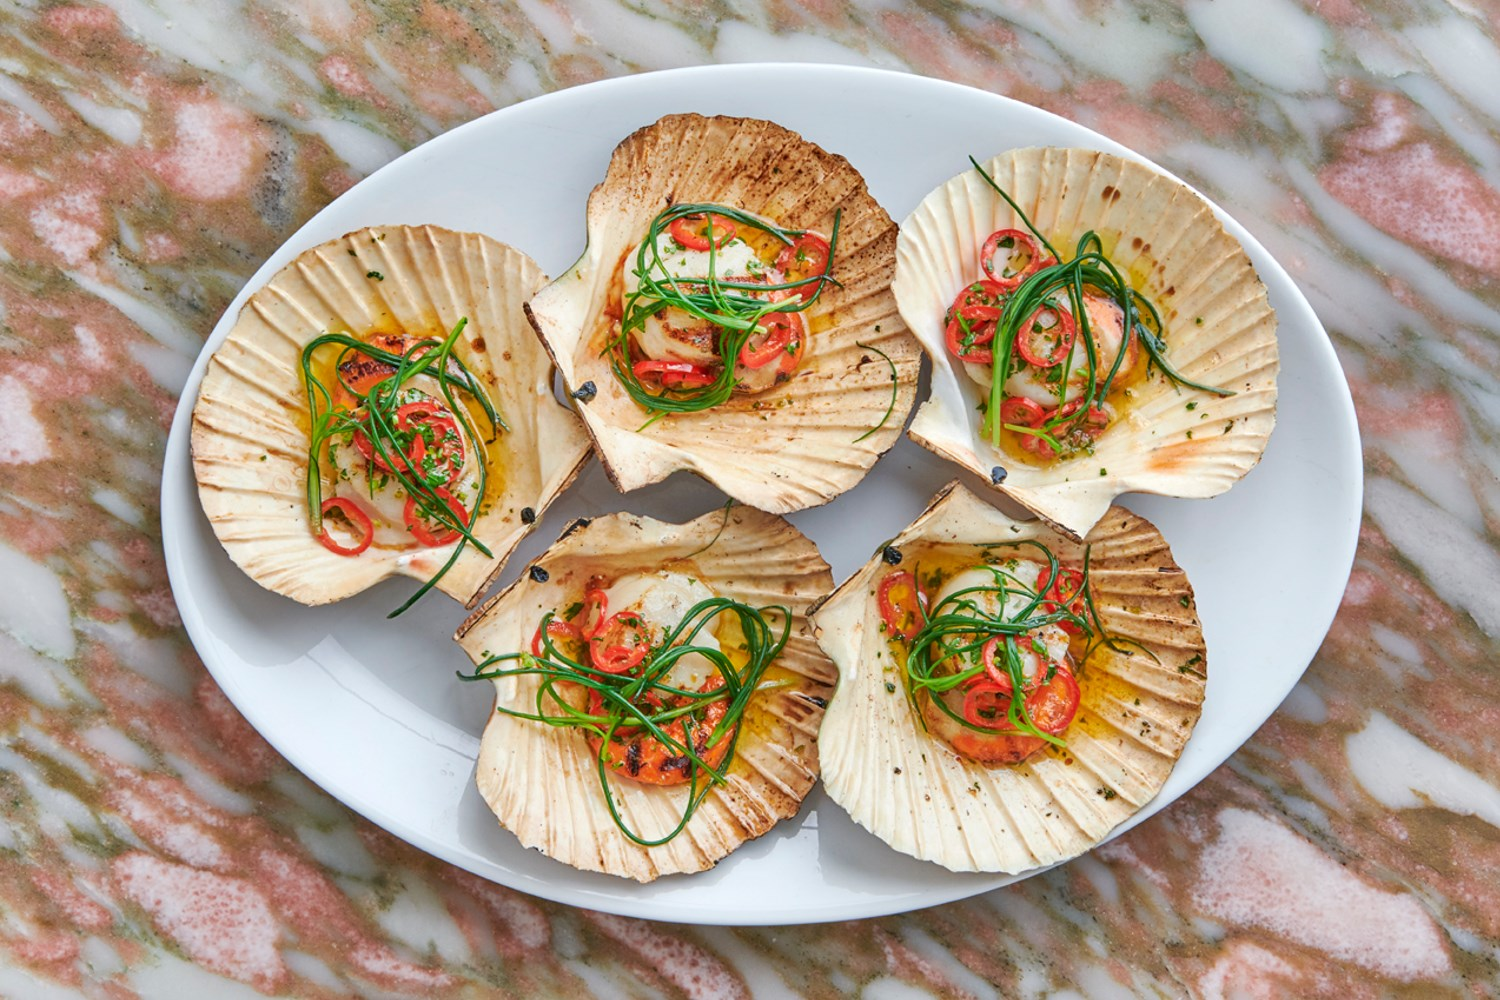 Italian Food in Kensington at Daphne's, Scallops with Chilli & Garlic